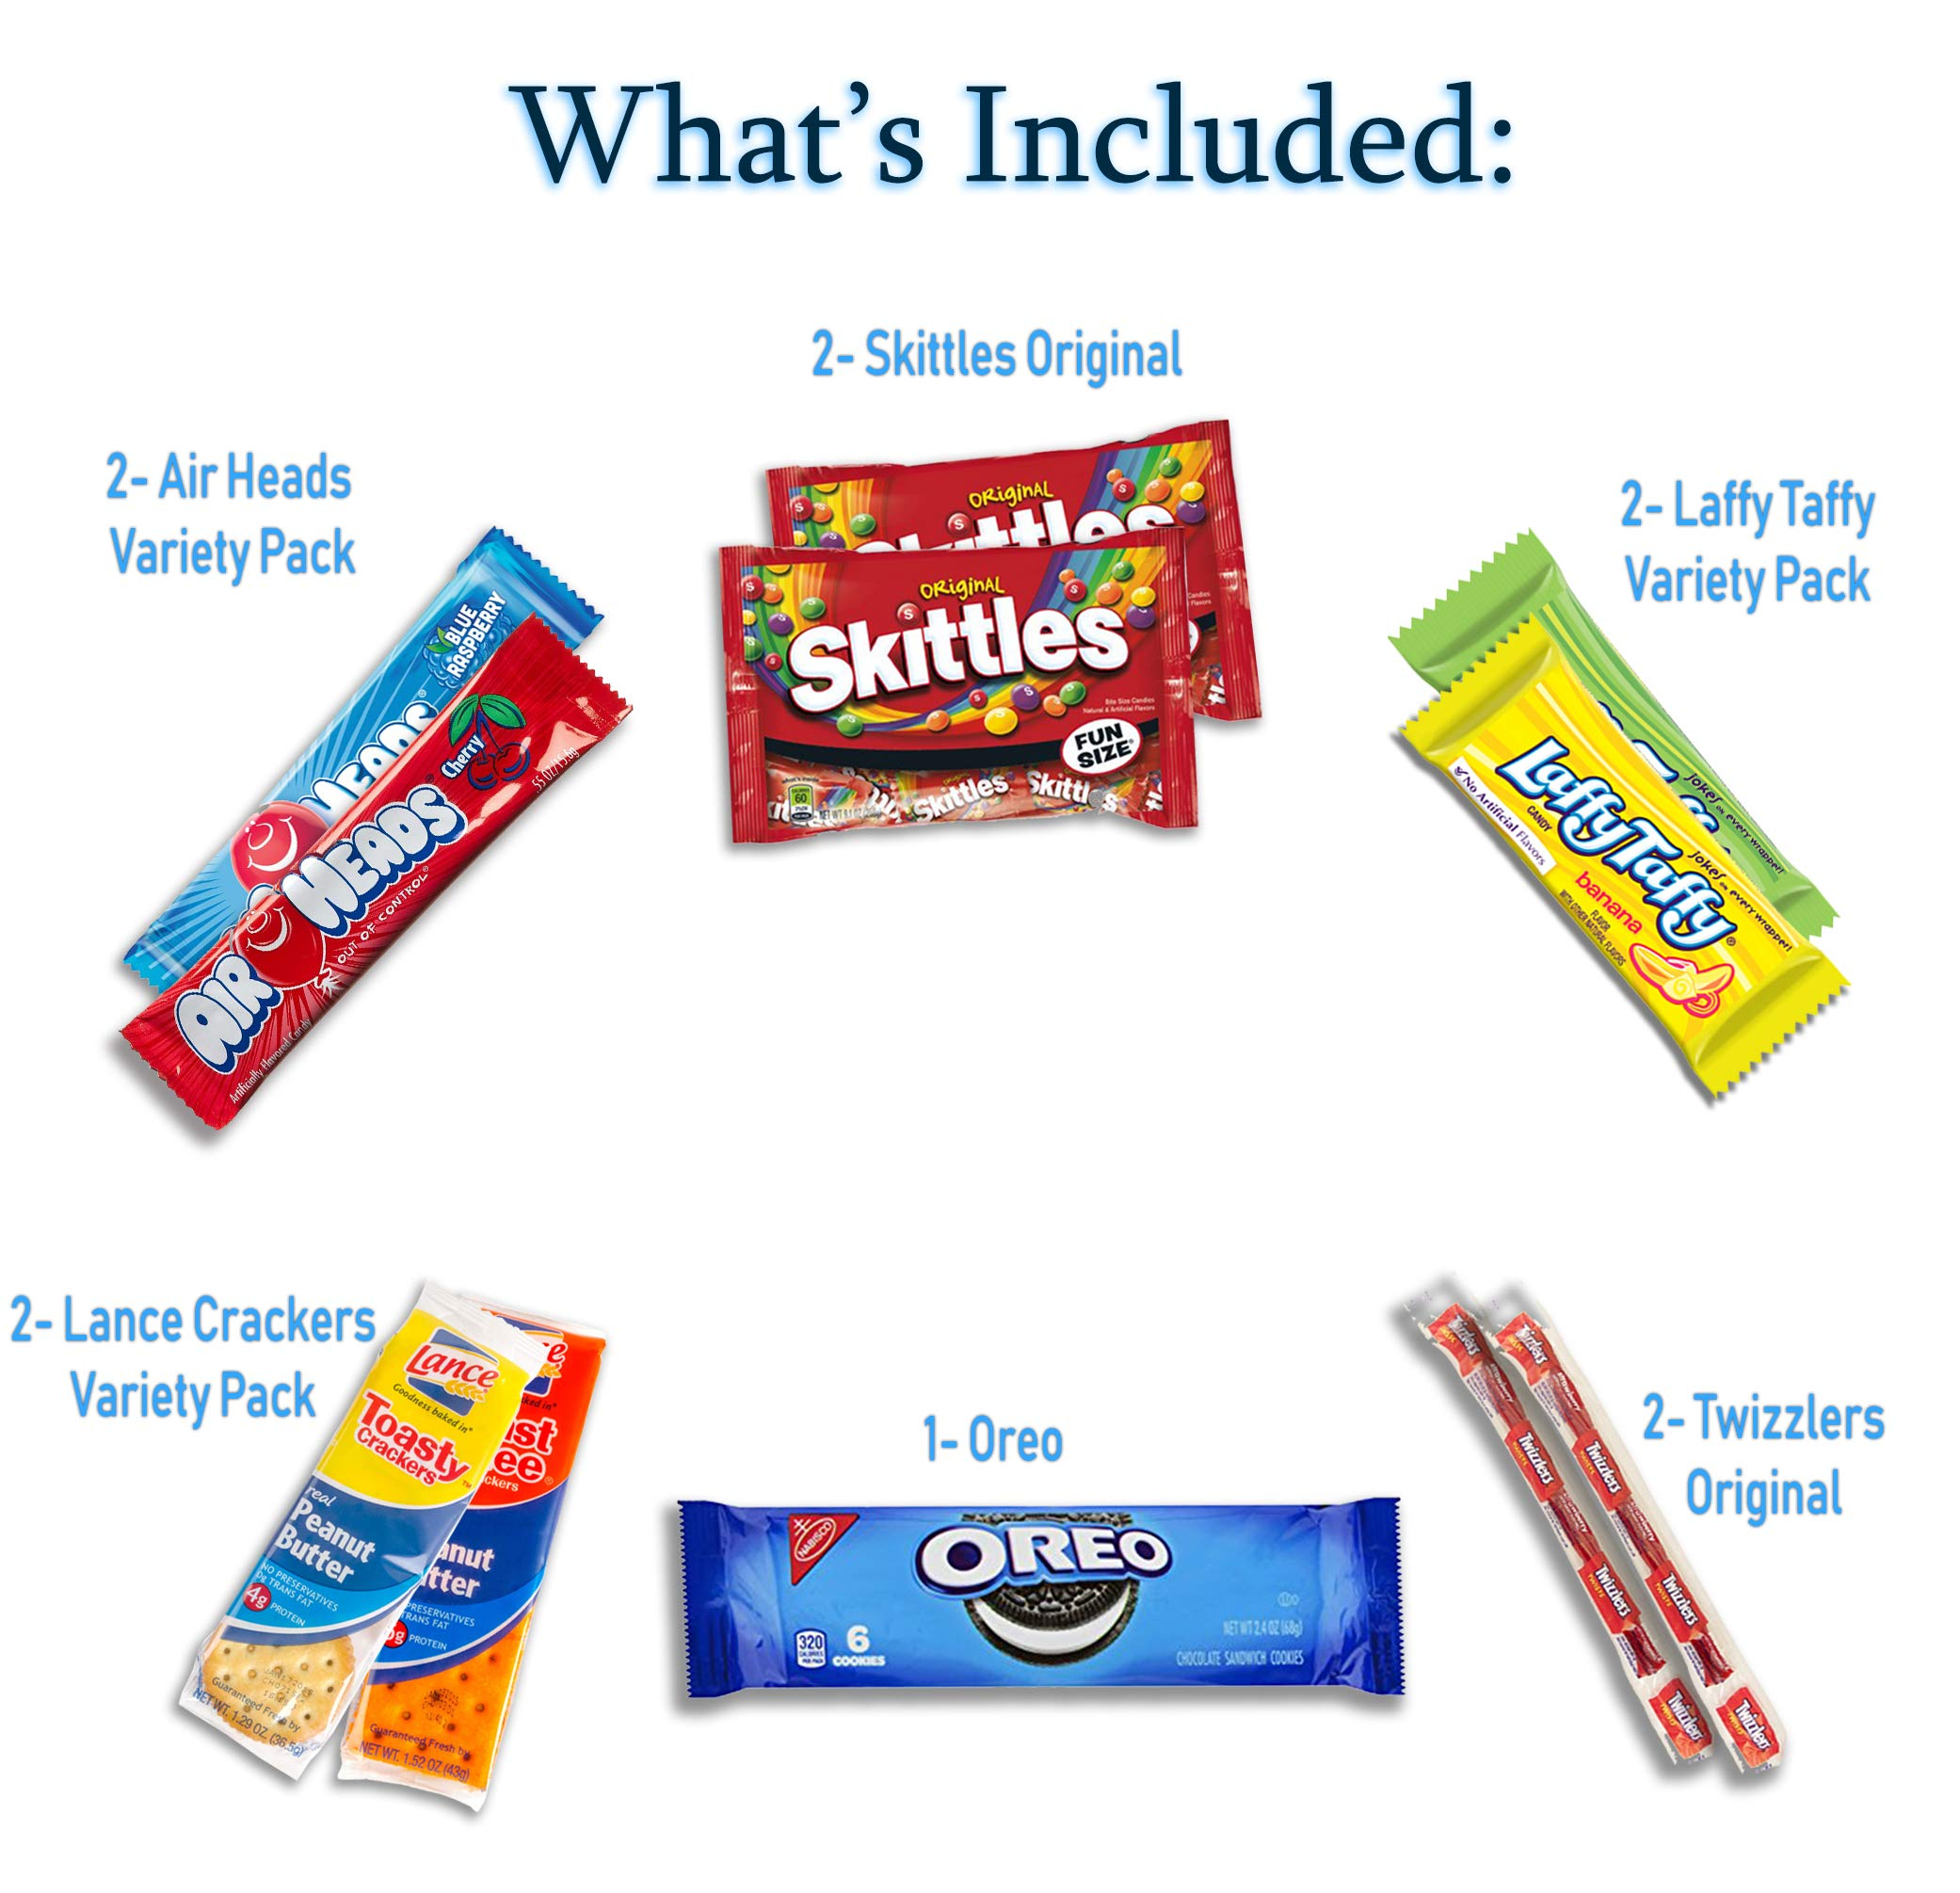 Snacks Care Package - Chips, Cookies, Candy Assortment Bundle Gift Pack and Variety Box 30 Count by Veratify